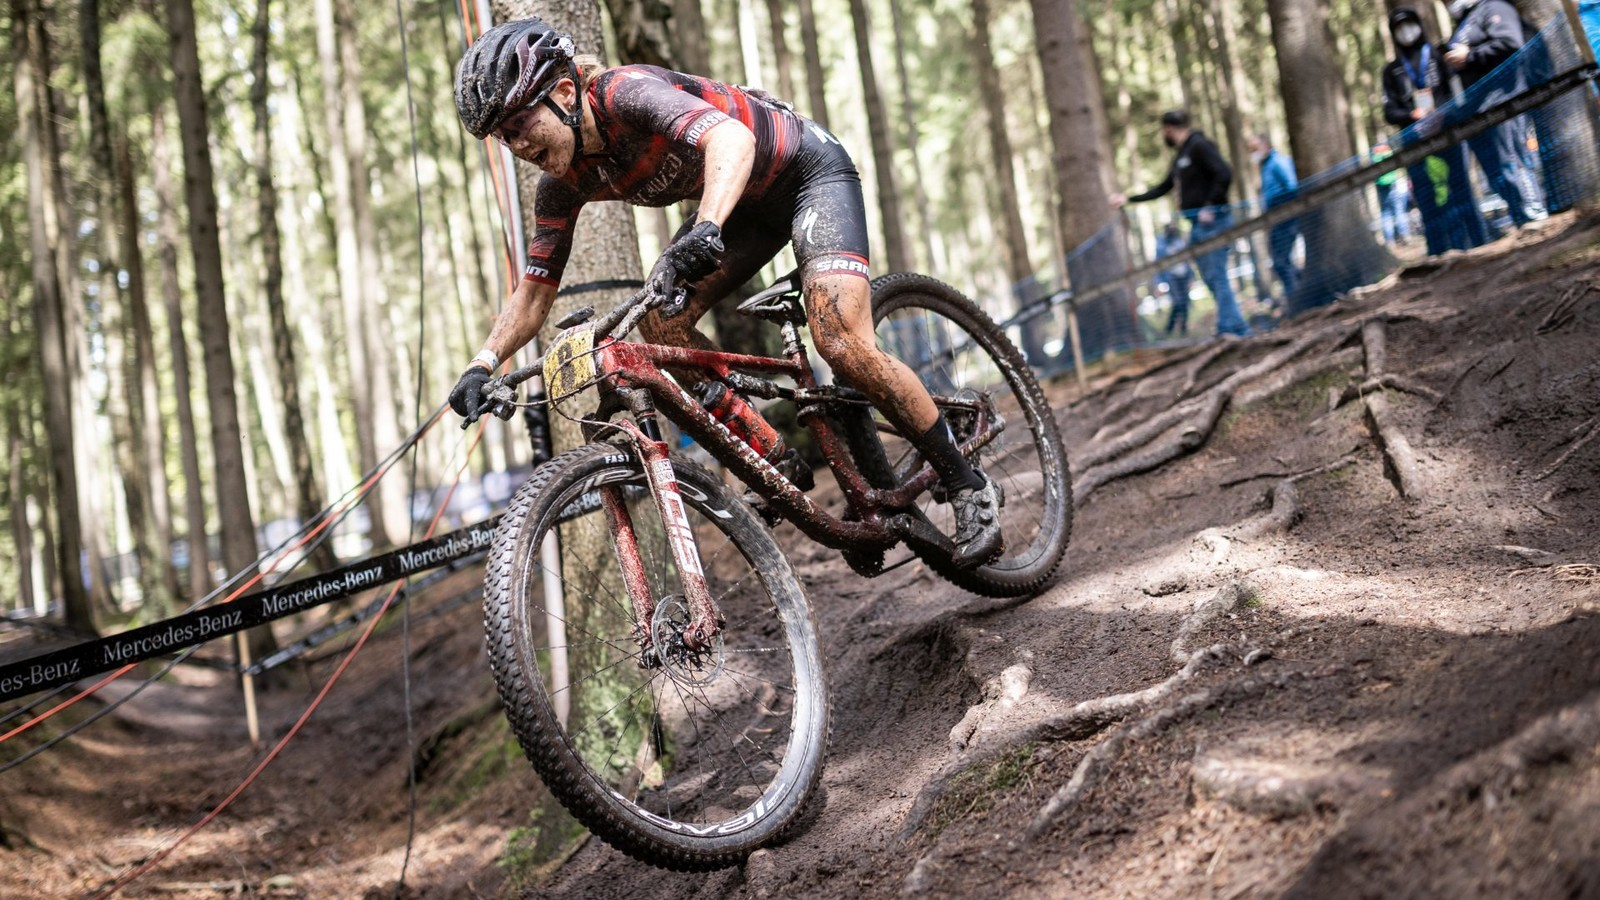 Specialized Introduces new Renegade, Fast Trak and Ground Control Tires